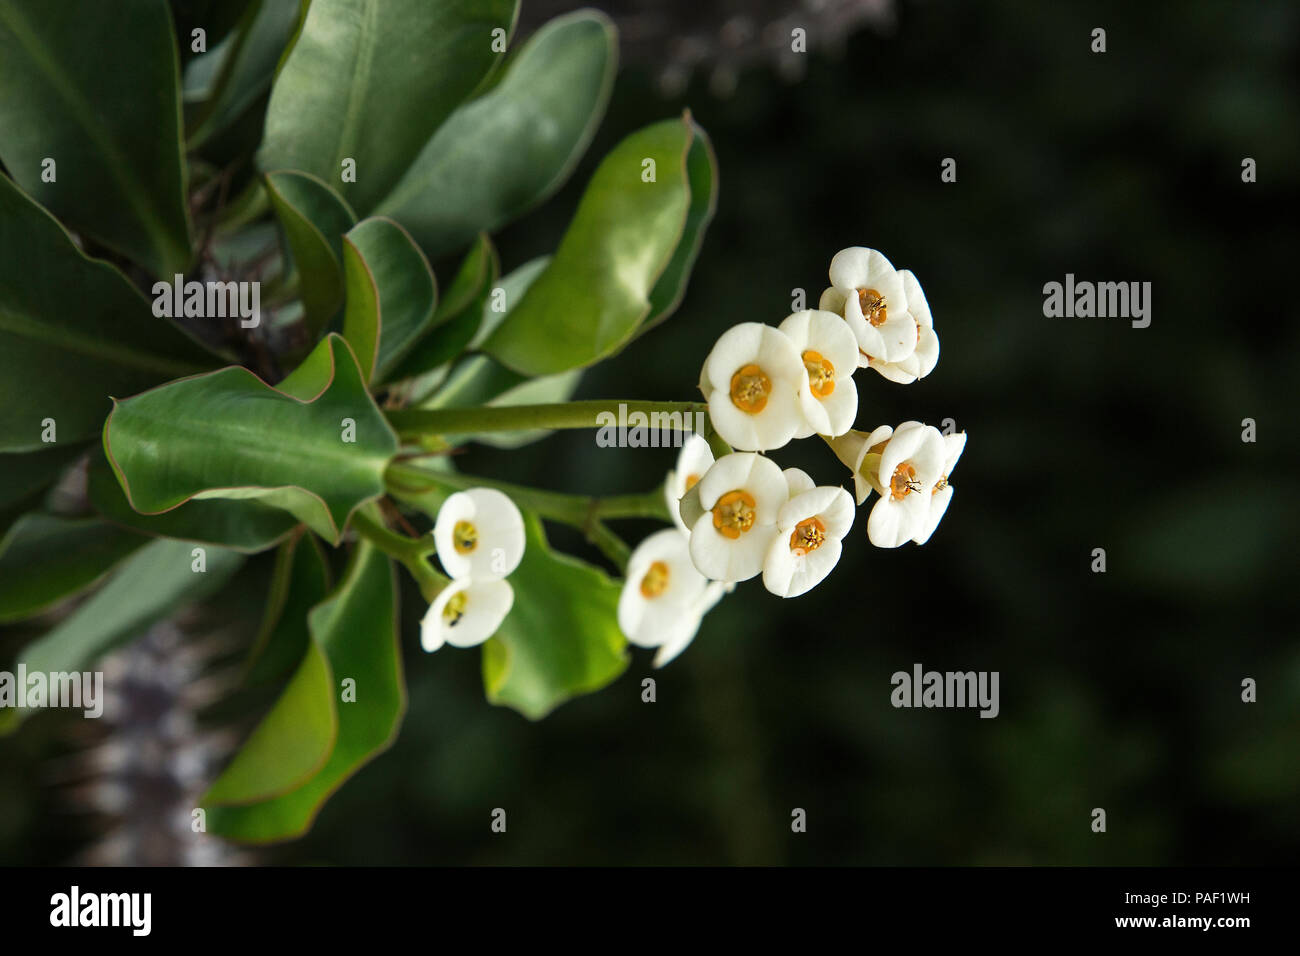 The Small White Flowers Of Euphorbia Milii The Crown Of Thorns